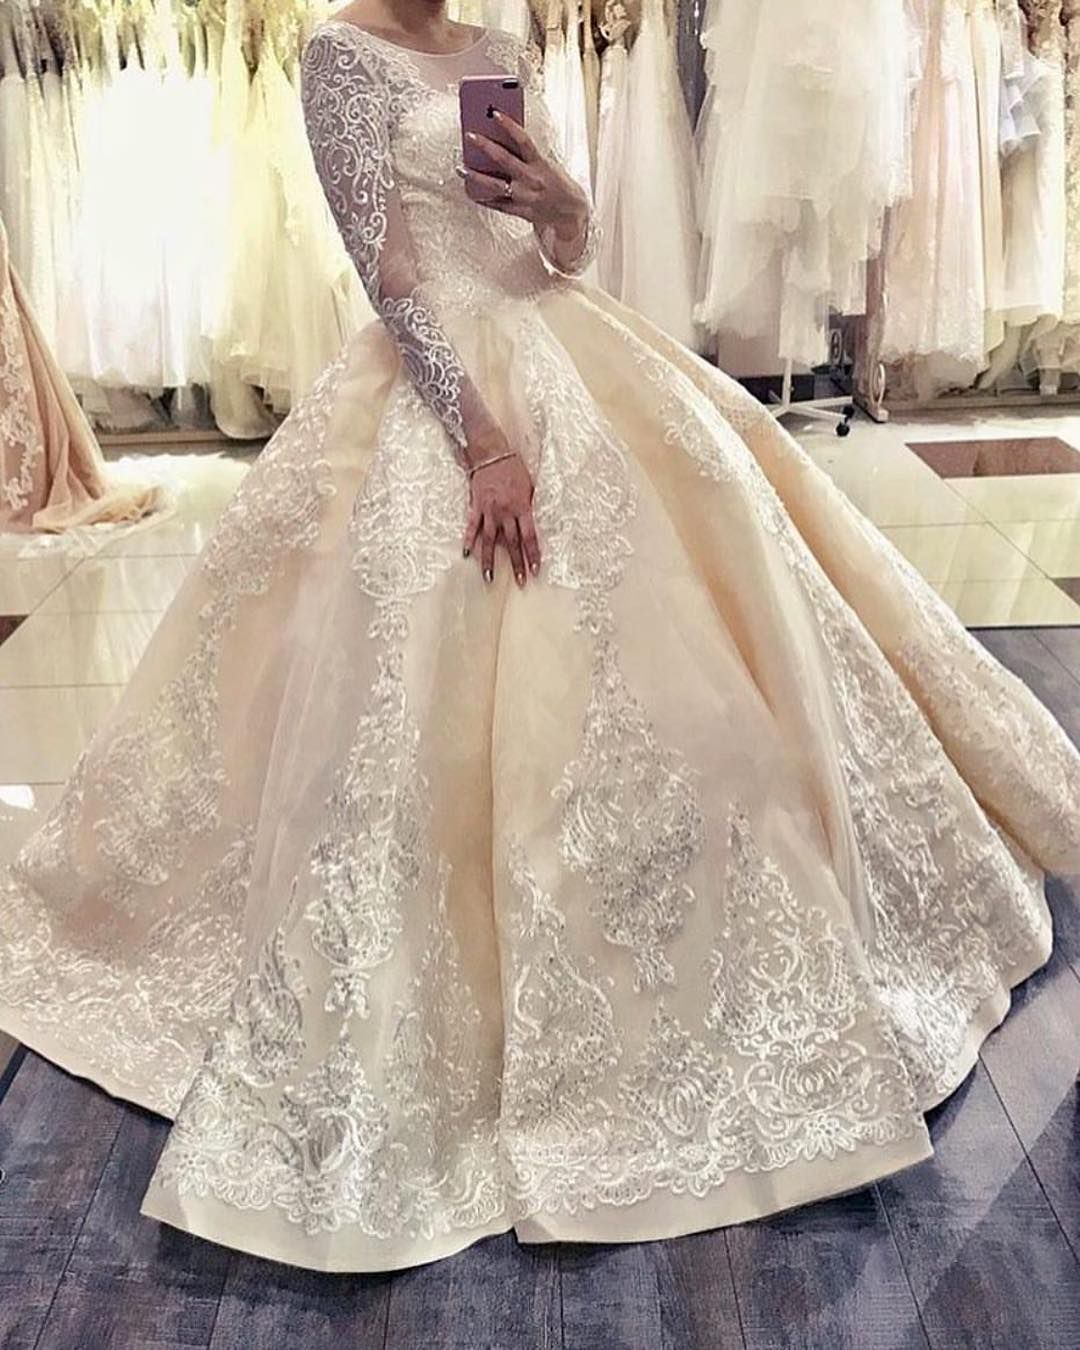 Custom Long Sleeve Wedding Gowns You Can Afford Wedding Gowns Wedding Gowns With Sleeves Wedding Dresses